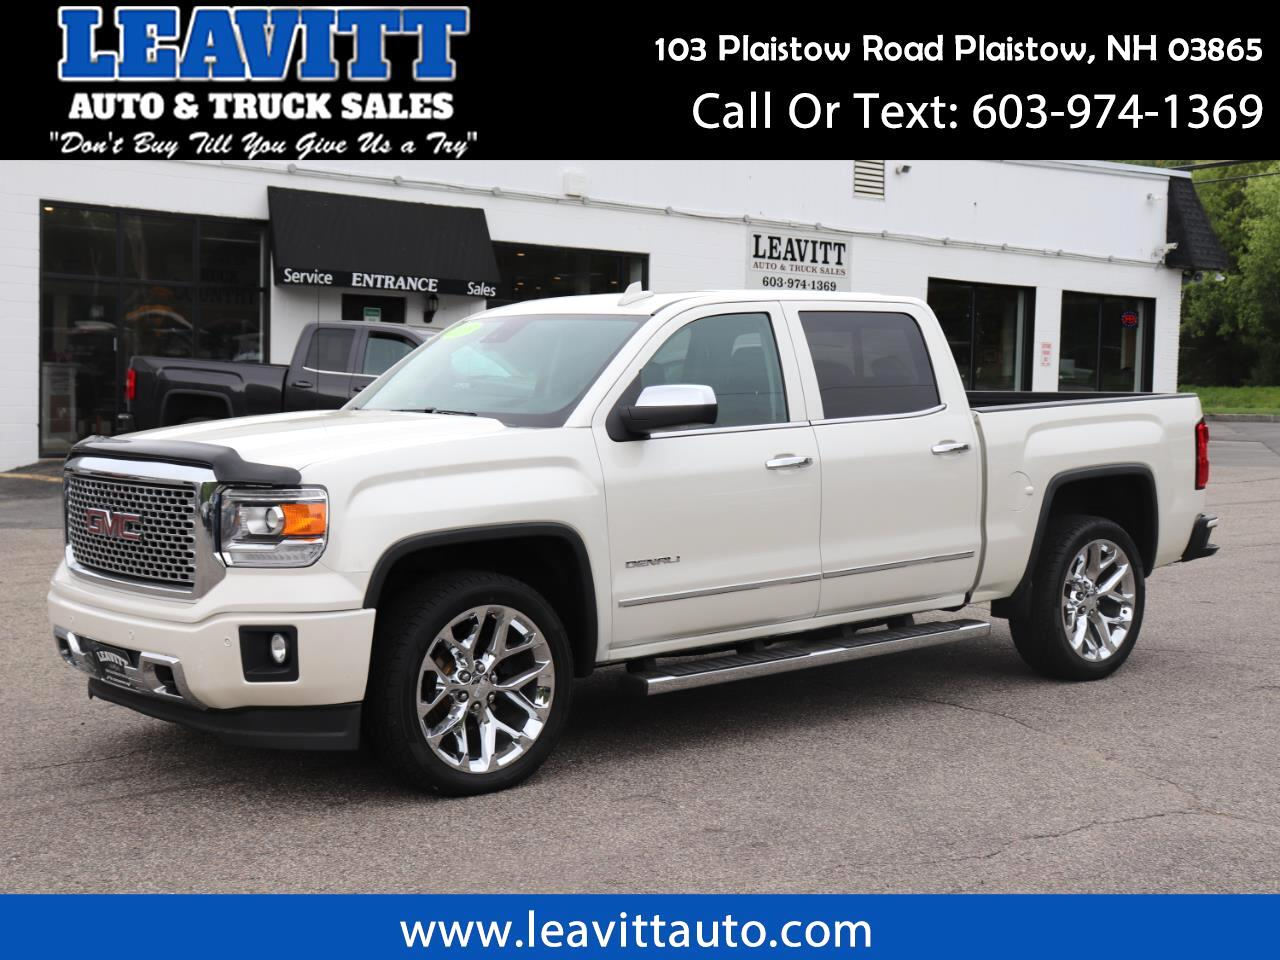 2015 GMC Sierra 1500 DENALI CREW CAB 4X4 LOADED